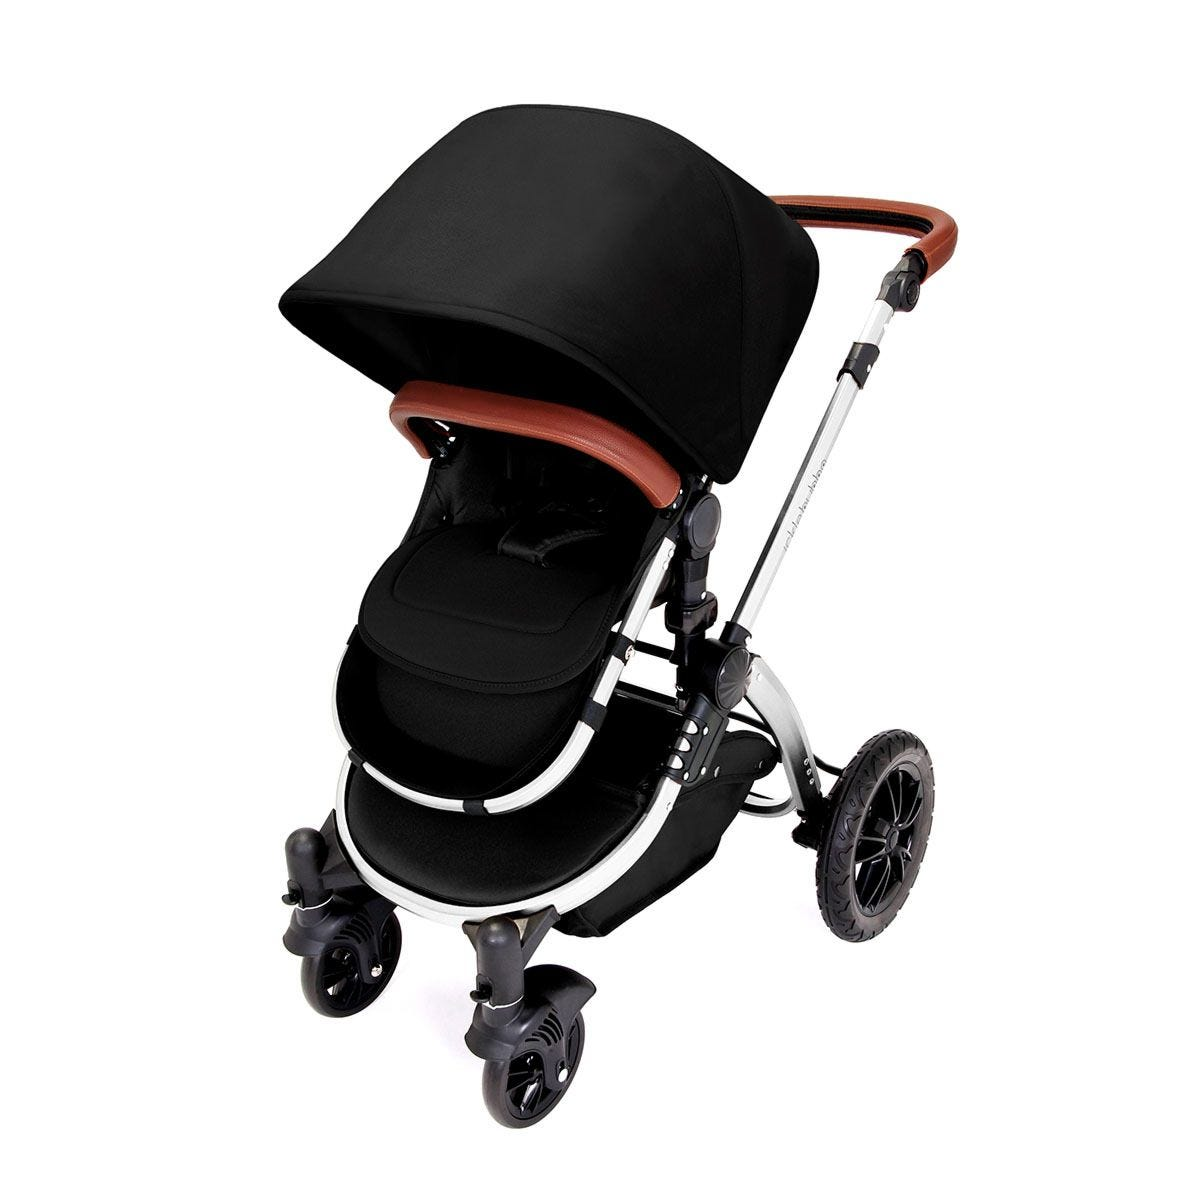 Ickle Bubba Stomp V4 All in One Travel System with Isofix Base - Midnight on Chrome with Tan Handles